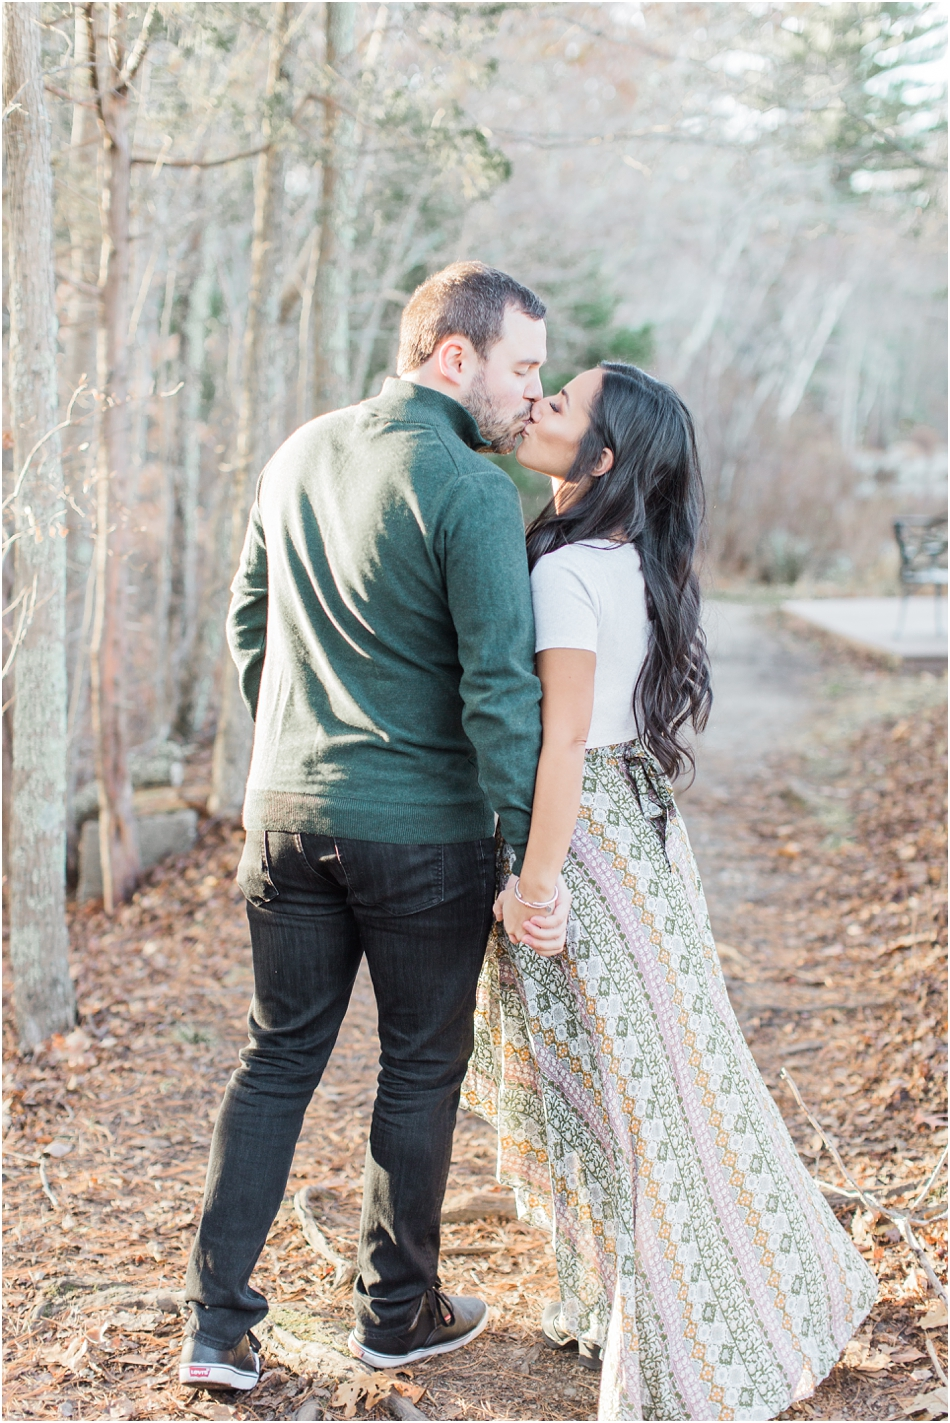 borderland_state_park_engagement_fall_michelle_matt_cape_cod_boston_new_england_wedding_photographer_Meredith_Jane_Photography_photo_0264.jpg